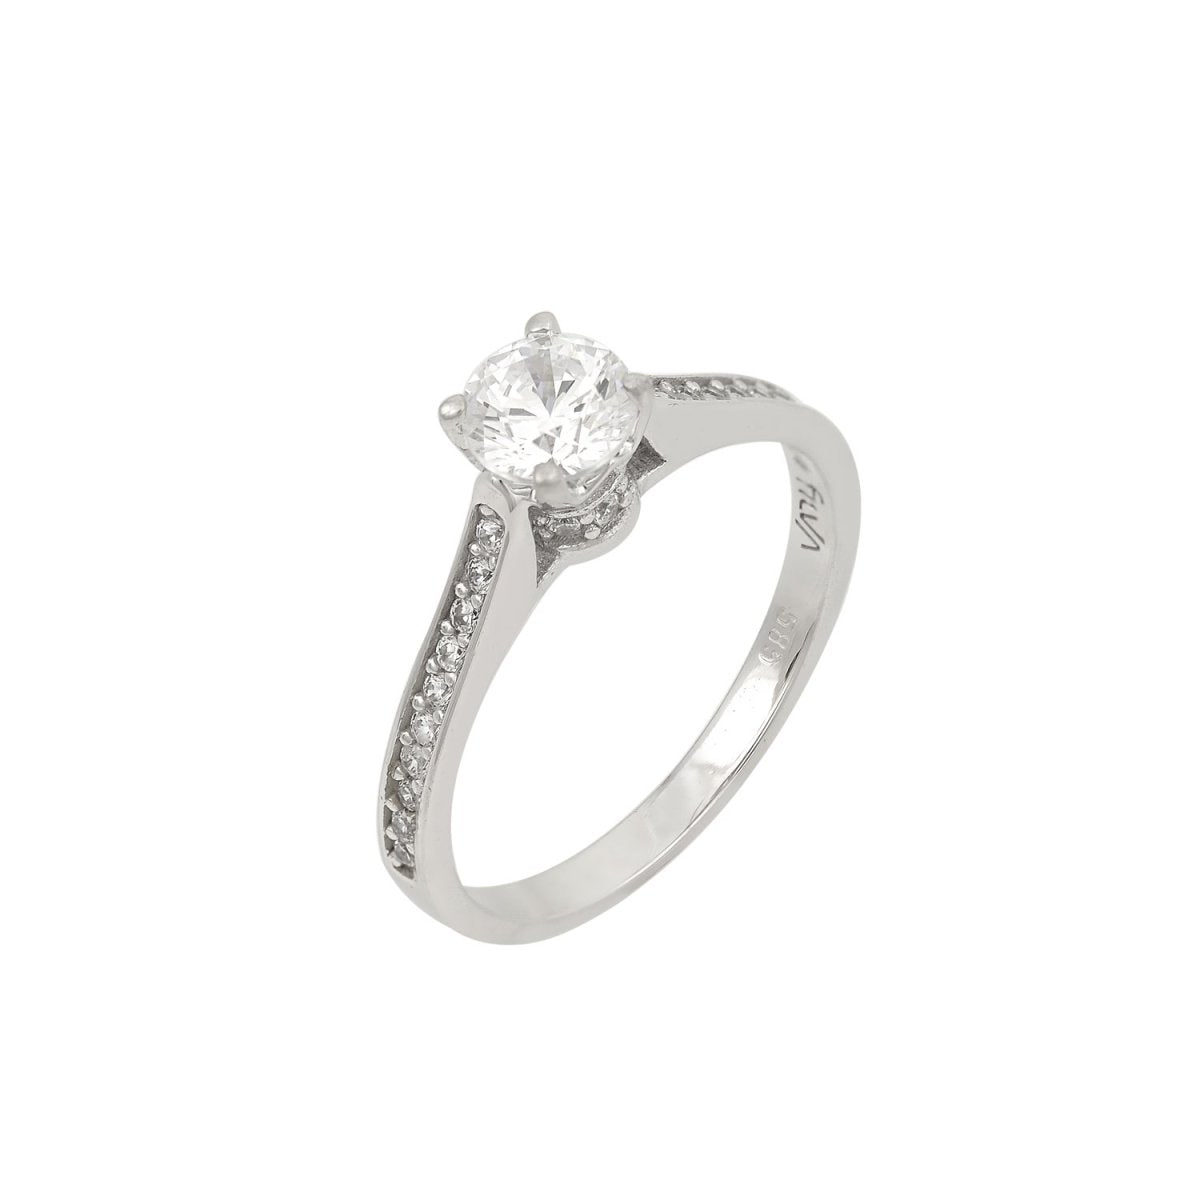 Single Stone Ring M7114 White Gold 14ct - Goldy Jewelry Store